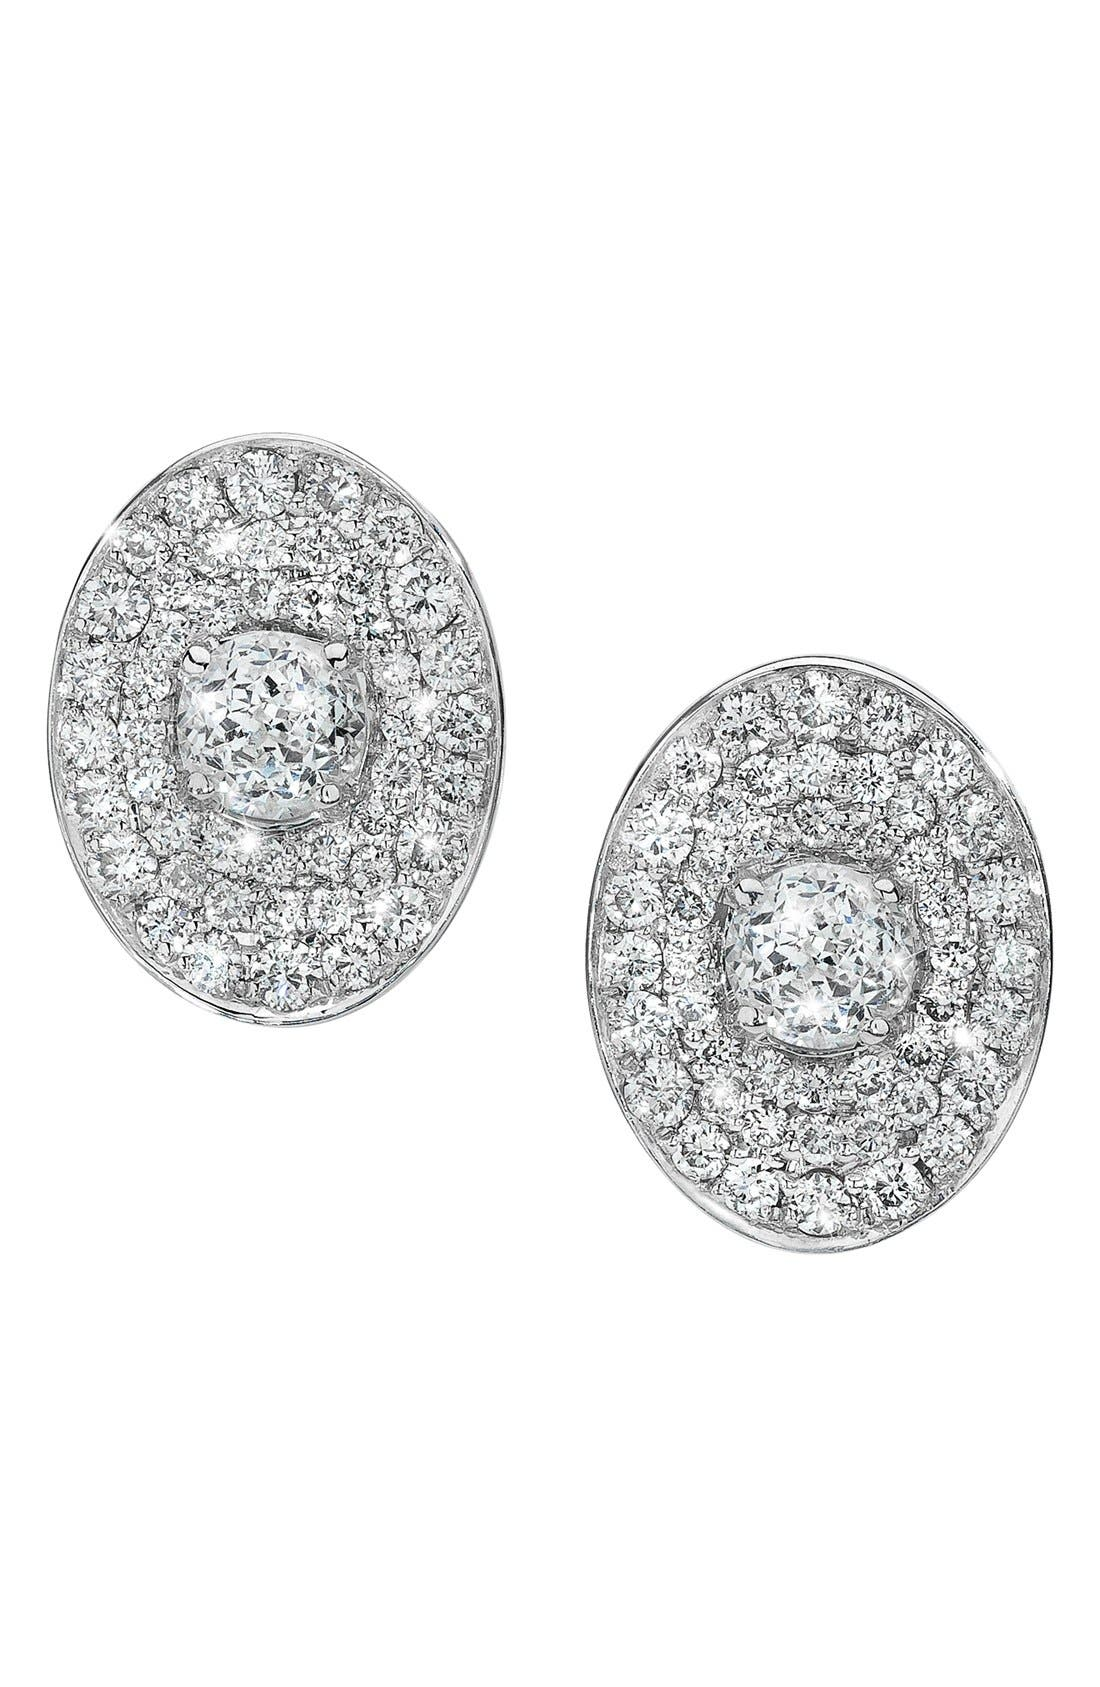 Alternate Image 1 Selected - Ivanka Trump 'Signature' Oval Pavé Diamond Stud Earrings